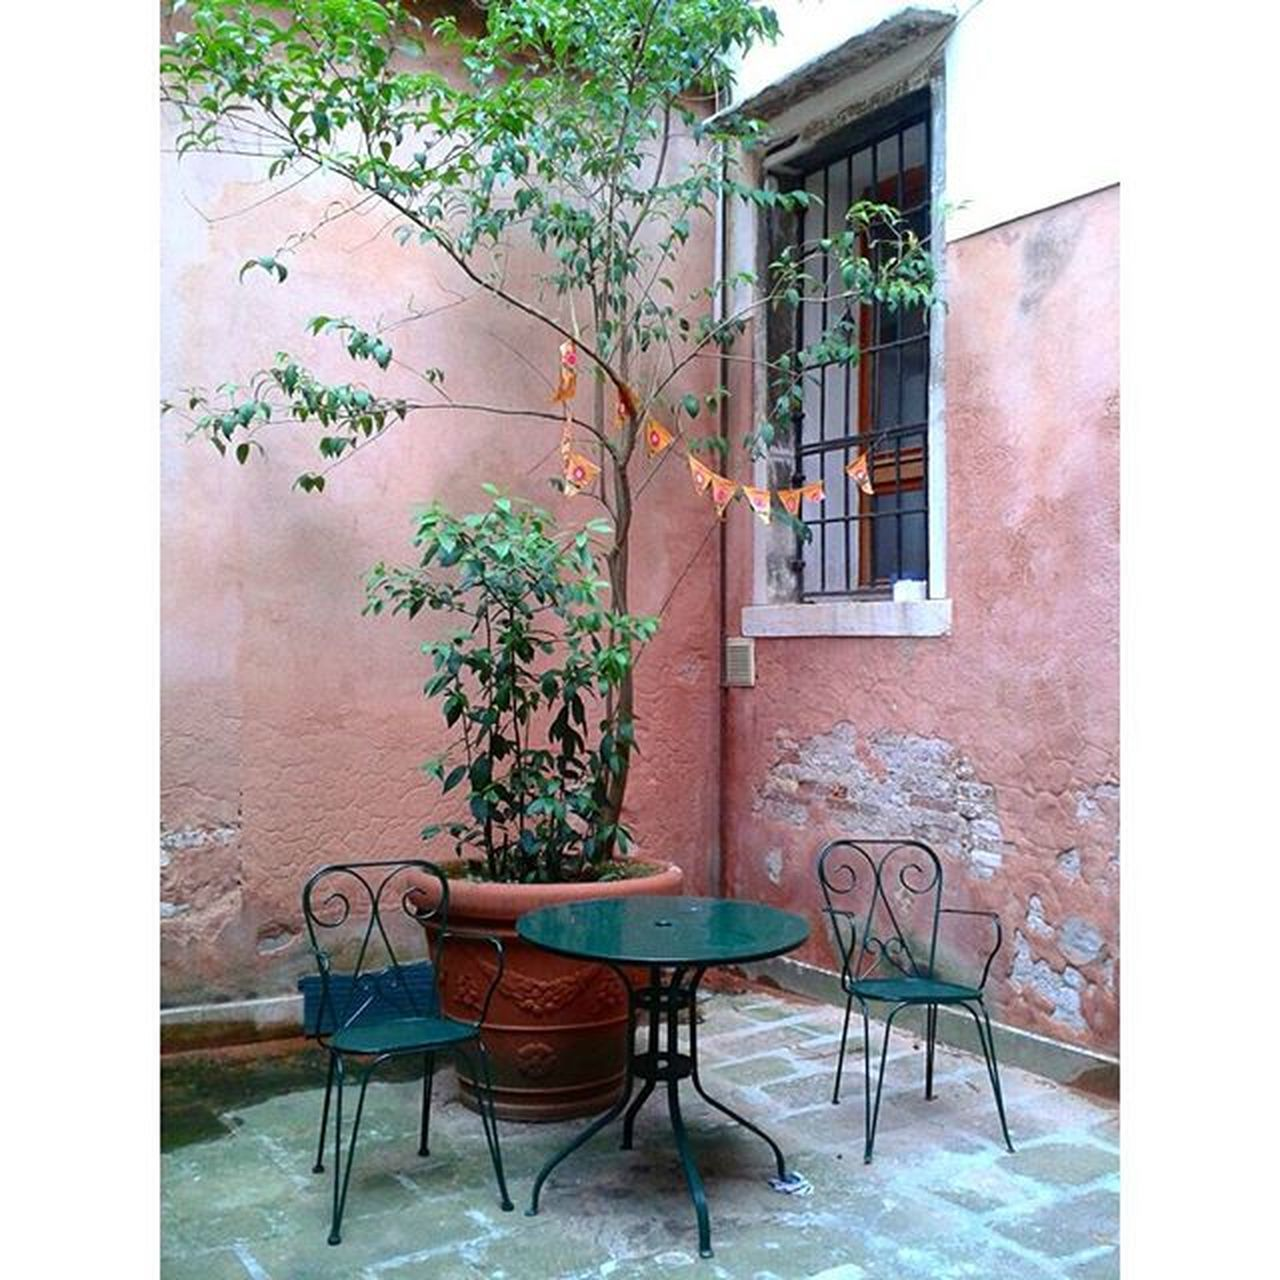 architecture, chair, building exterior, table, built structure, no people, plant, outdoors, day